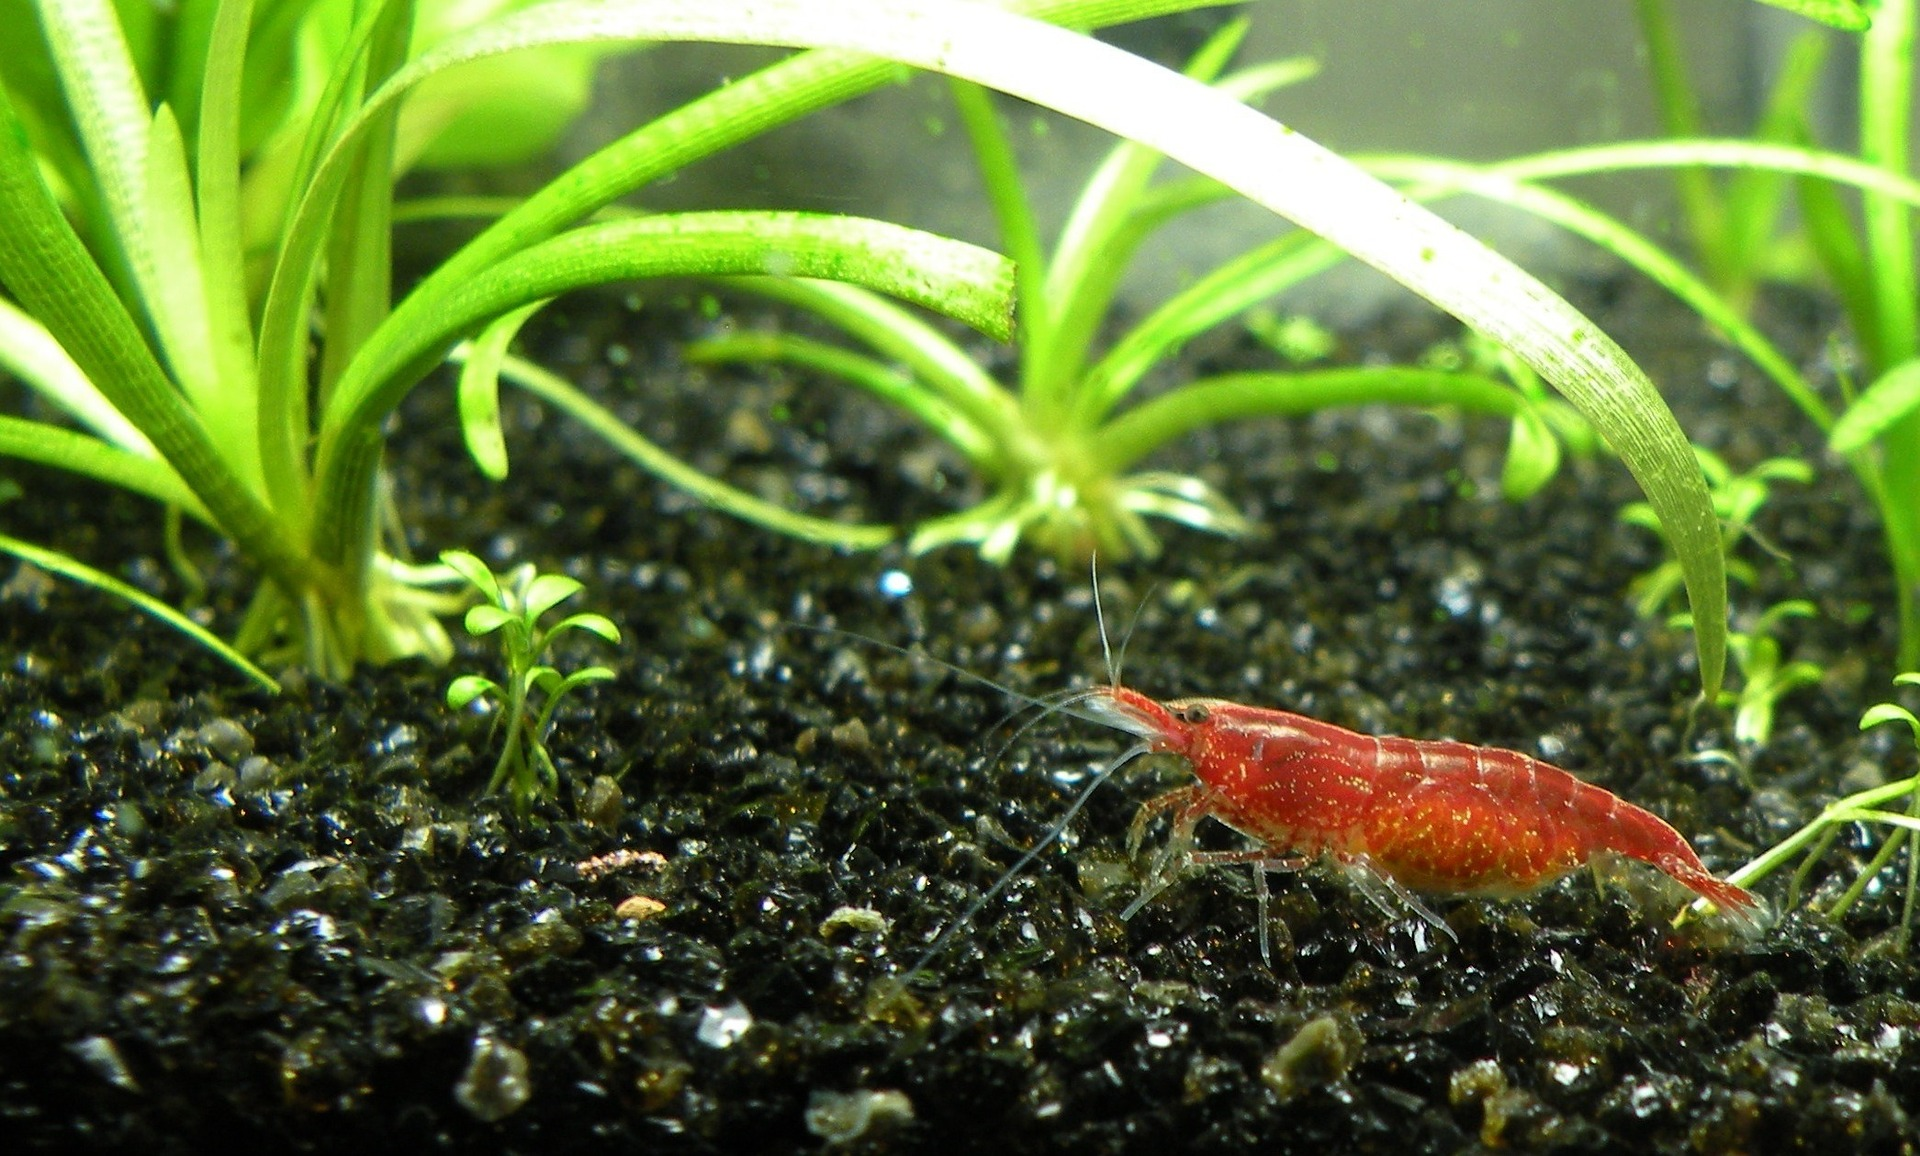 What are the Differences between  Male vs Female Cherry Shrimp?